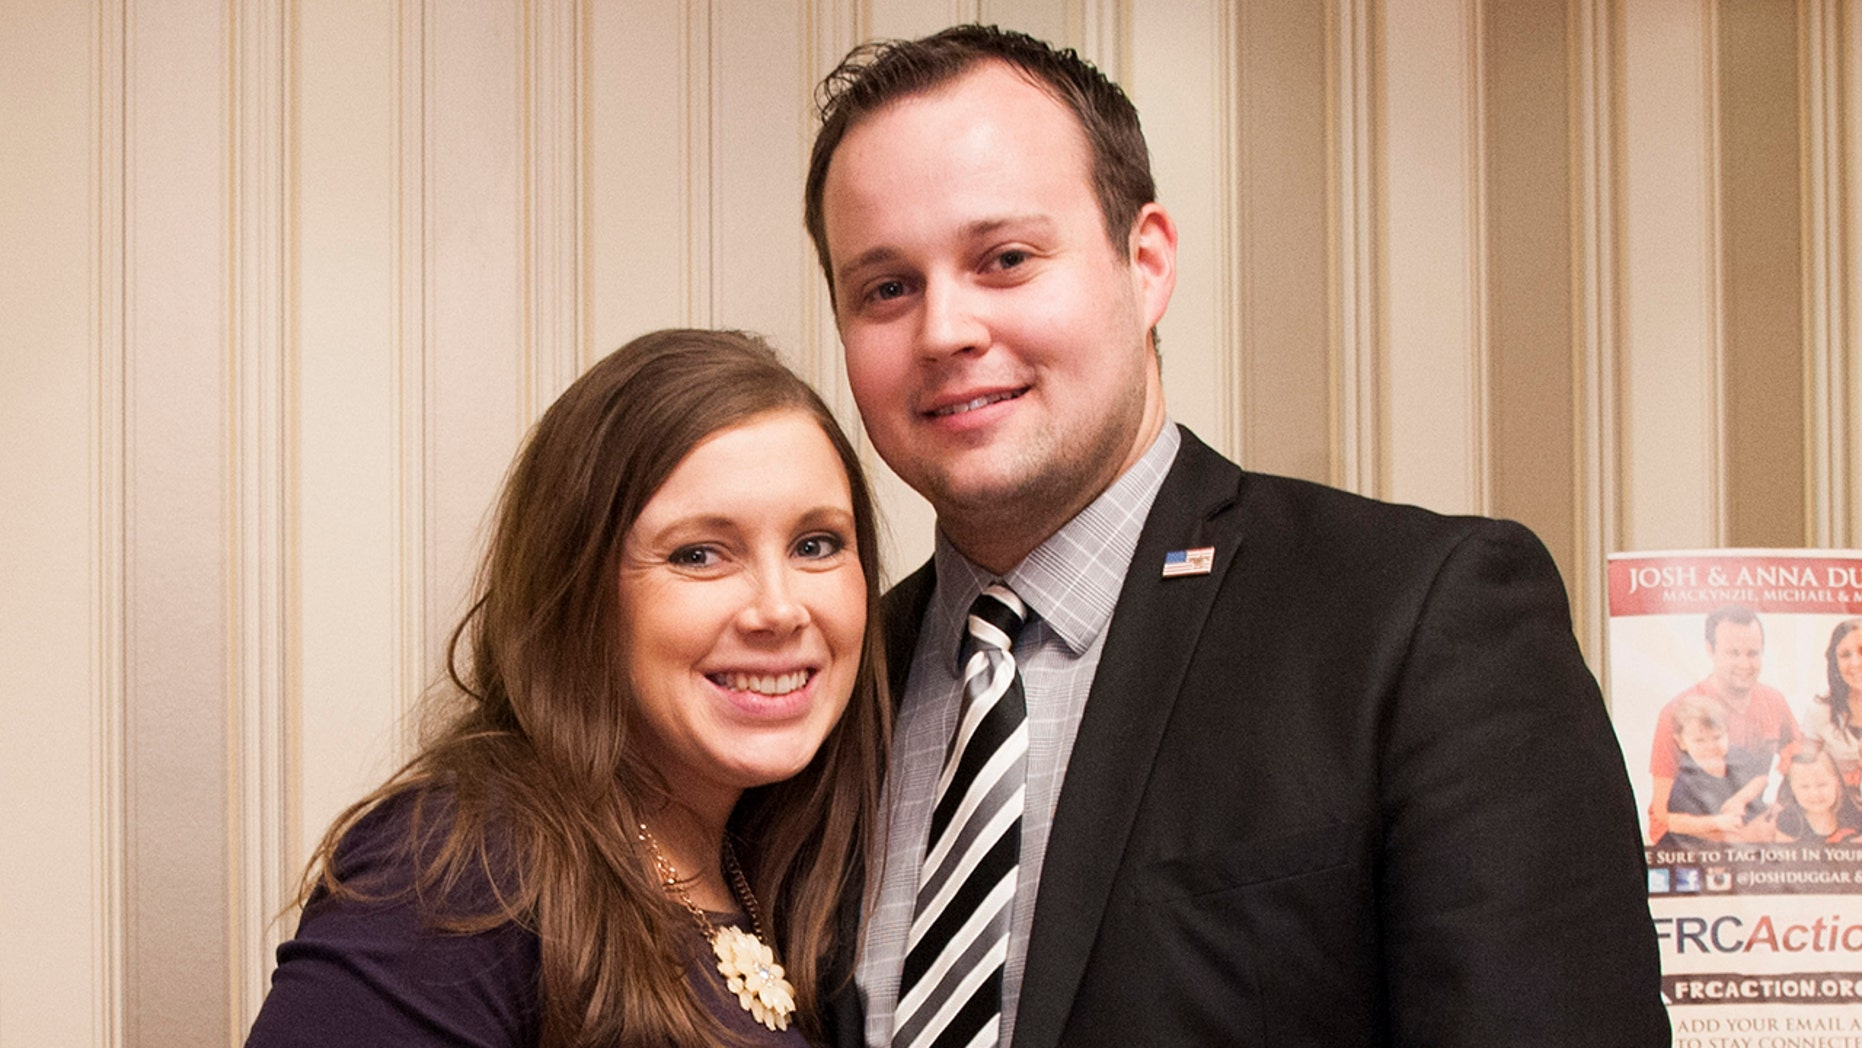 """Anna Duggar wrote in an Instagram post that the past 10 years with her husband Josh Duggar """"have been a wonderful adventure."""""""